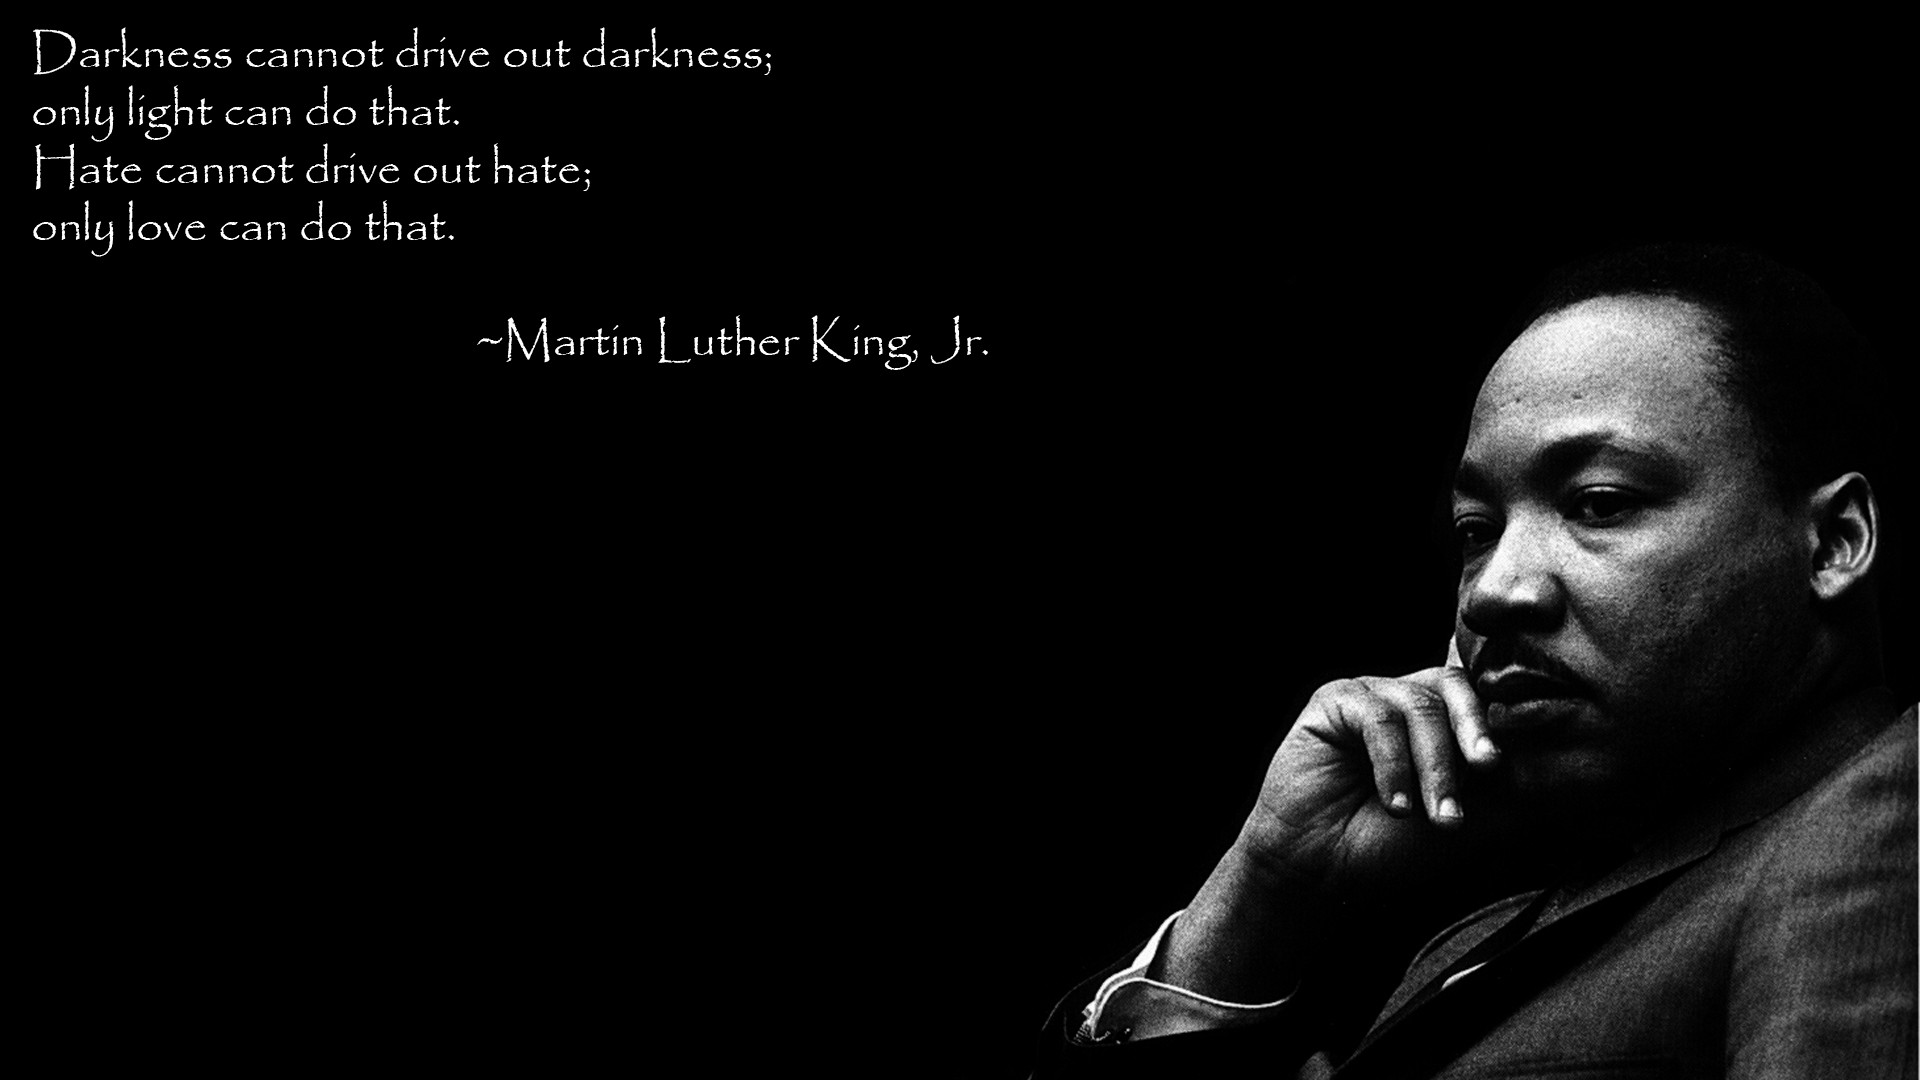 Martin Luther King Quotes Inspirational Motivation: Quotes Motivation Inspiration Martin Luther King Wallpaper